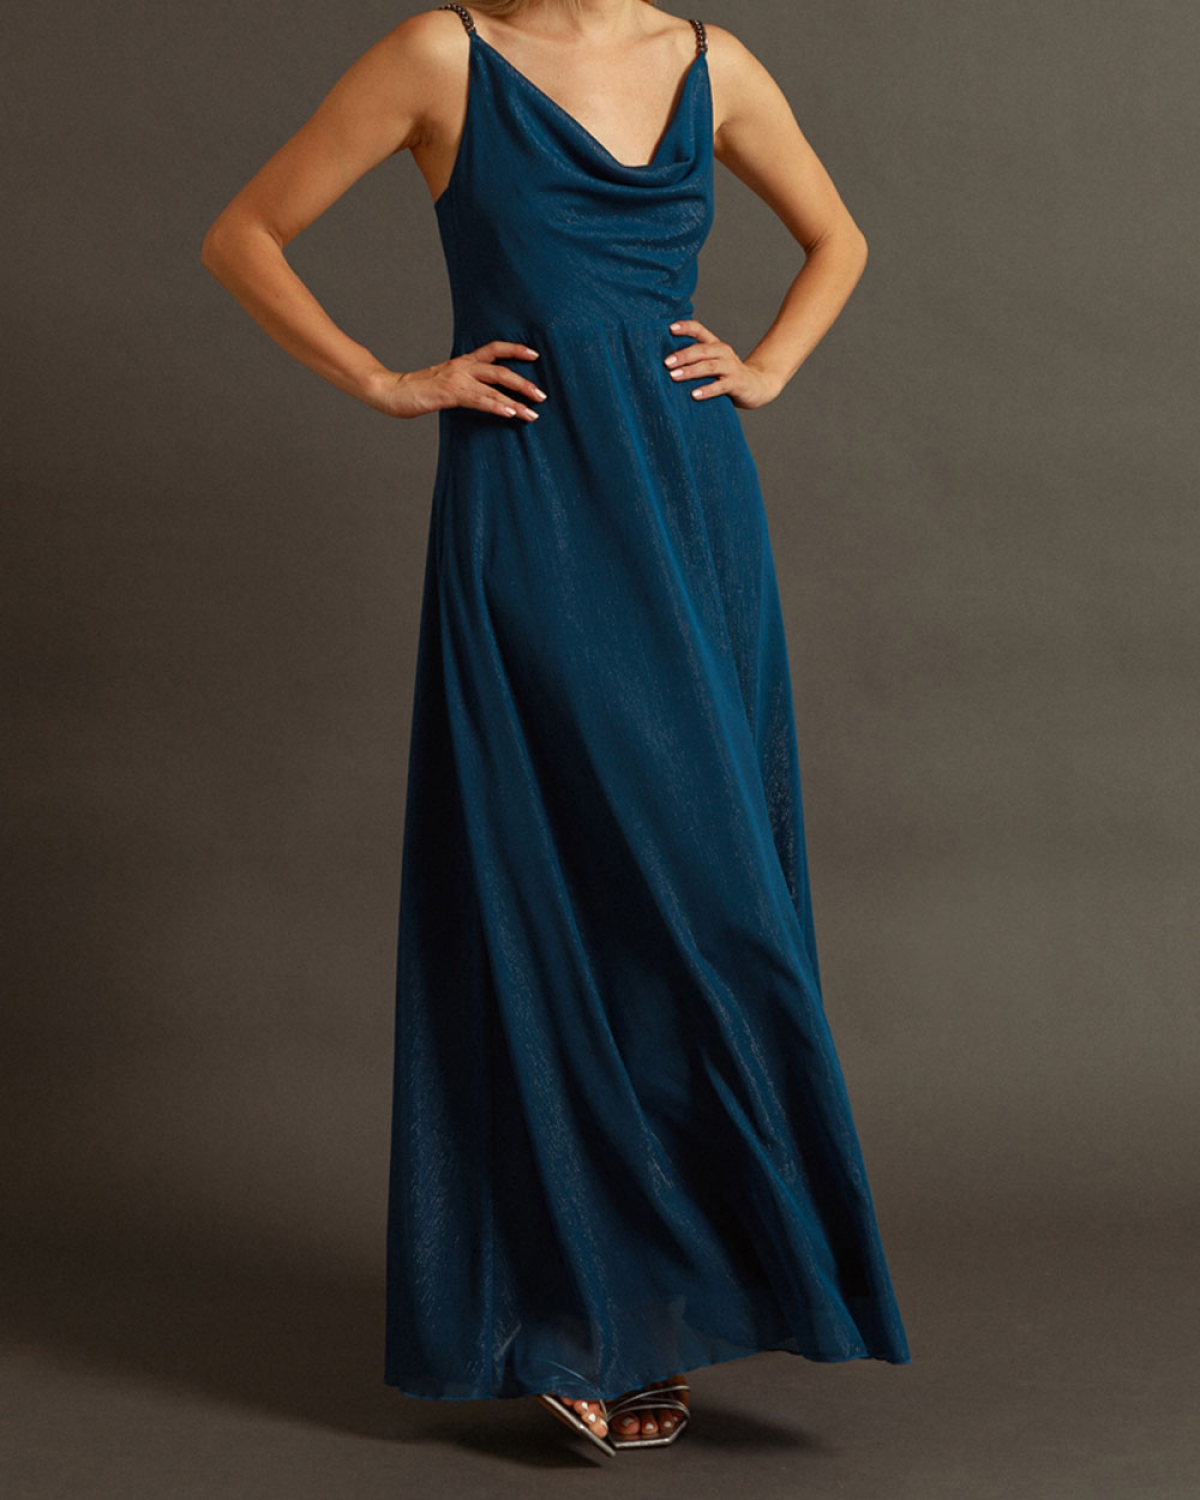 Maxi Blue Dress With Silver Chain